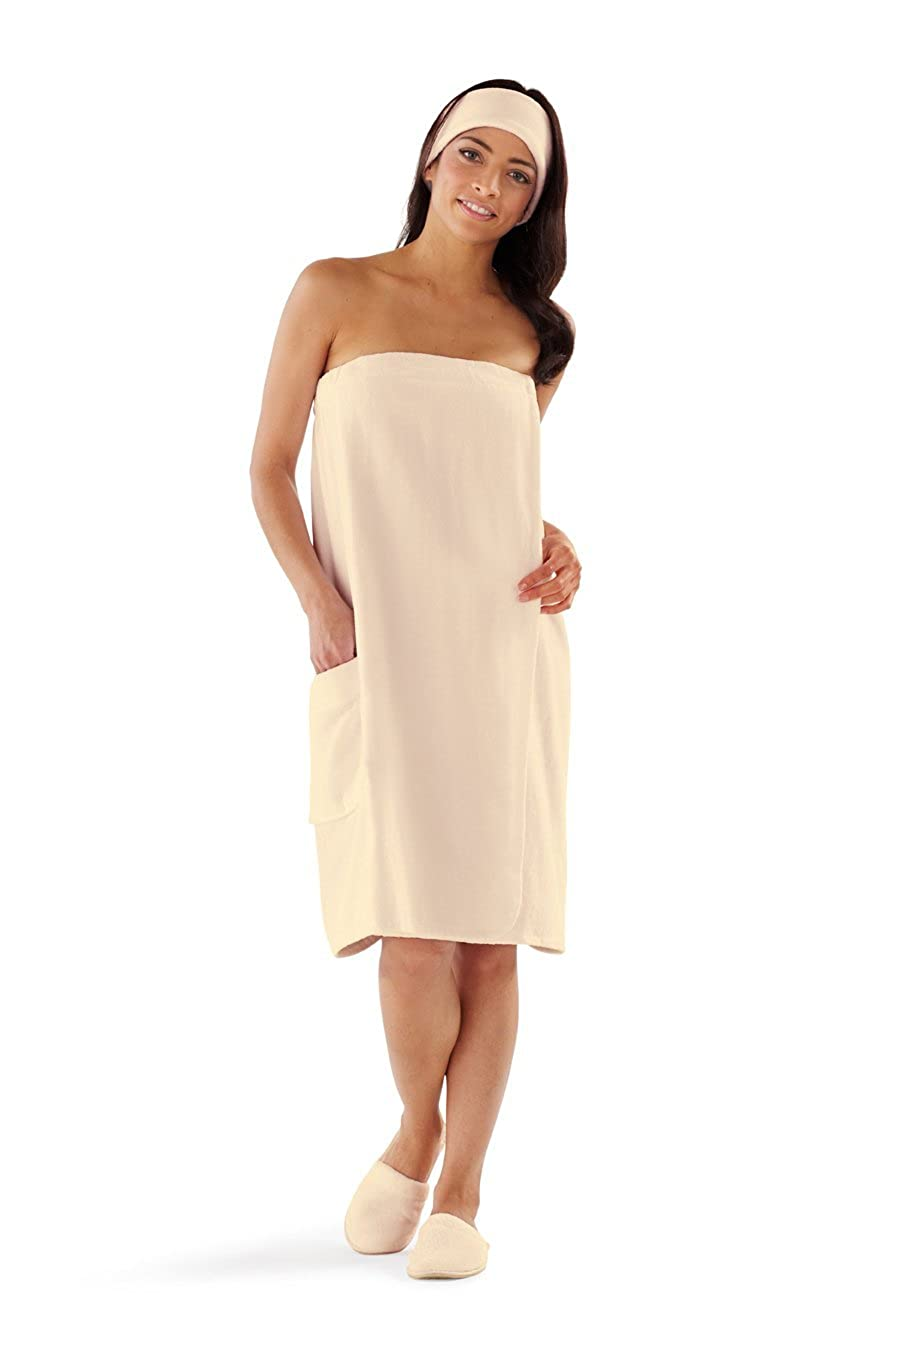 Boca Terry Women's Spa Wrap - 100% Combed Velour Cotton - One Size, XXL & XXXXL